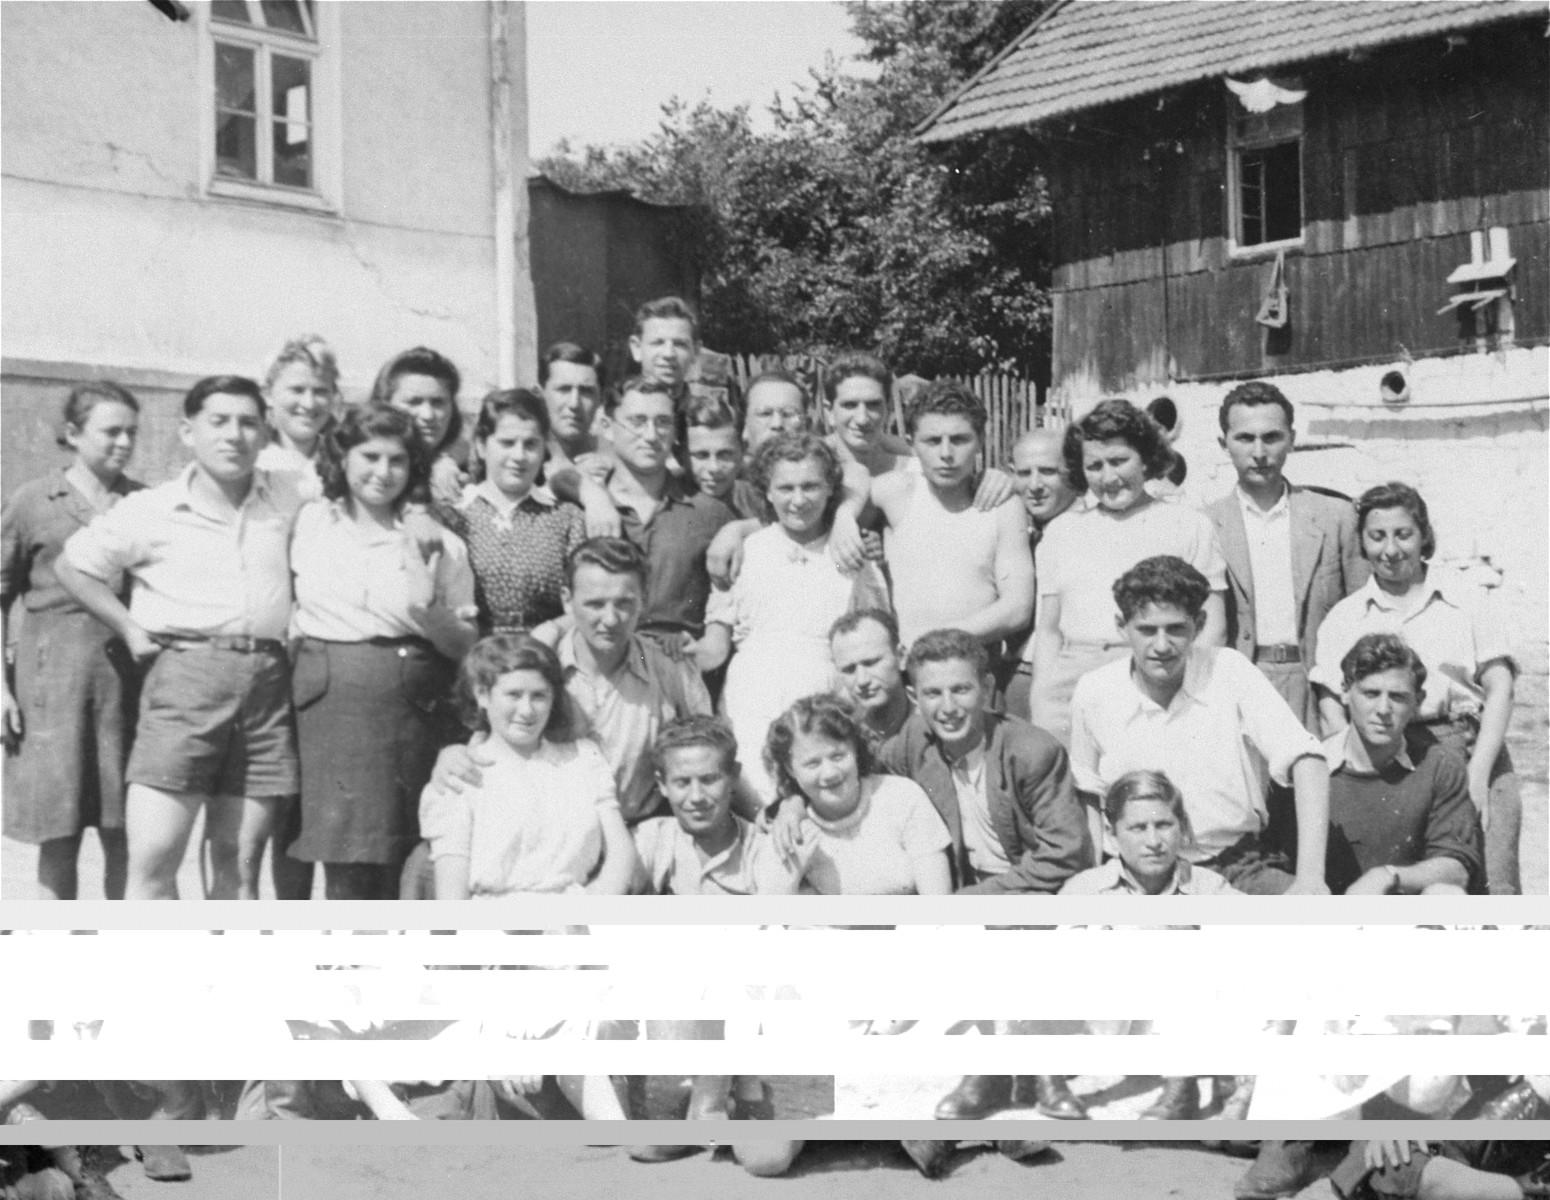 Group portrait of members of the Kibbutz Buchenwald hachshara (Zionist collective) in Geringshof, Germany.  Among those pictured are Motek Nussenbaum, Roman Mor, Karla, Freddie Diamant, Yisrael Luzer, Blumah, Shmuel Mor, Shlomo Shiff, Izik Neuman, Aliza, Sylvia and Levin.